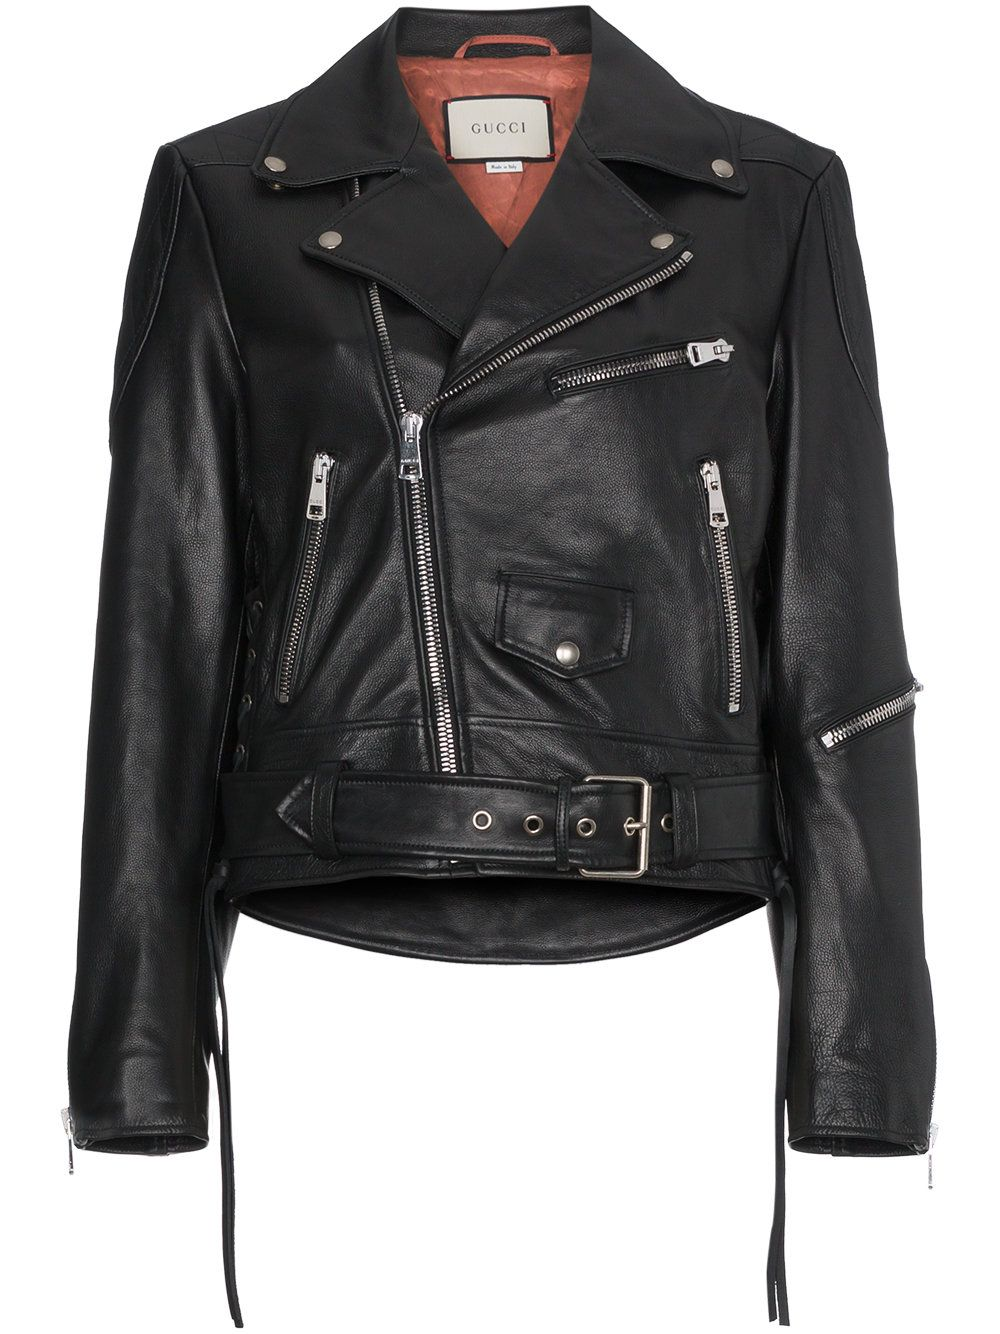 GUCCI . gucci cloth Jackets, Leather jacket, Leather